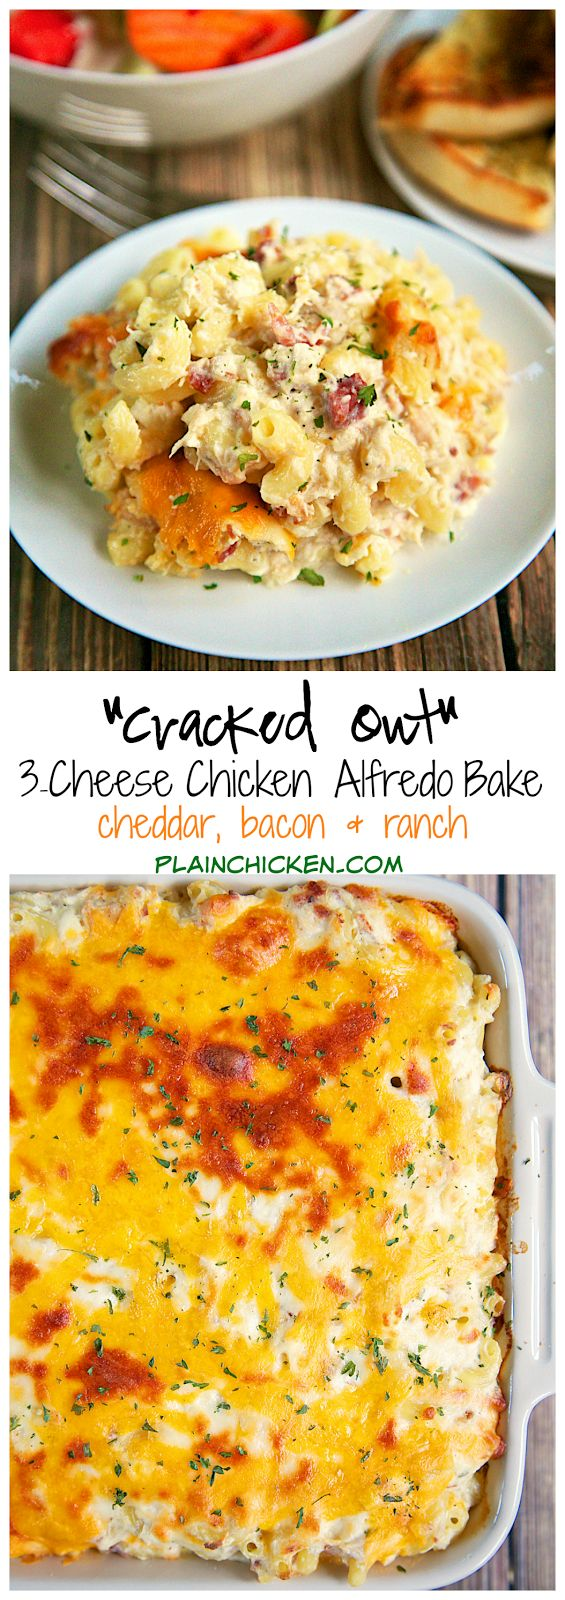 """Cracked Out"" Three Cheese Chicken Alfredo Bake Recipe - chicken, cheddar, bacon, ranch, alfredo sauce, pasta, mozzarella - makes a ton! Great for a potluck. We like to freeze half of it unbaked for later. Great reheated too! Once of our favorite weeknight casseroles!"